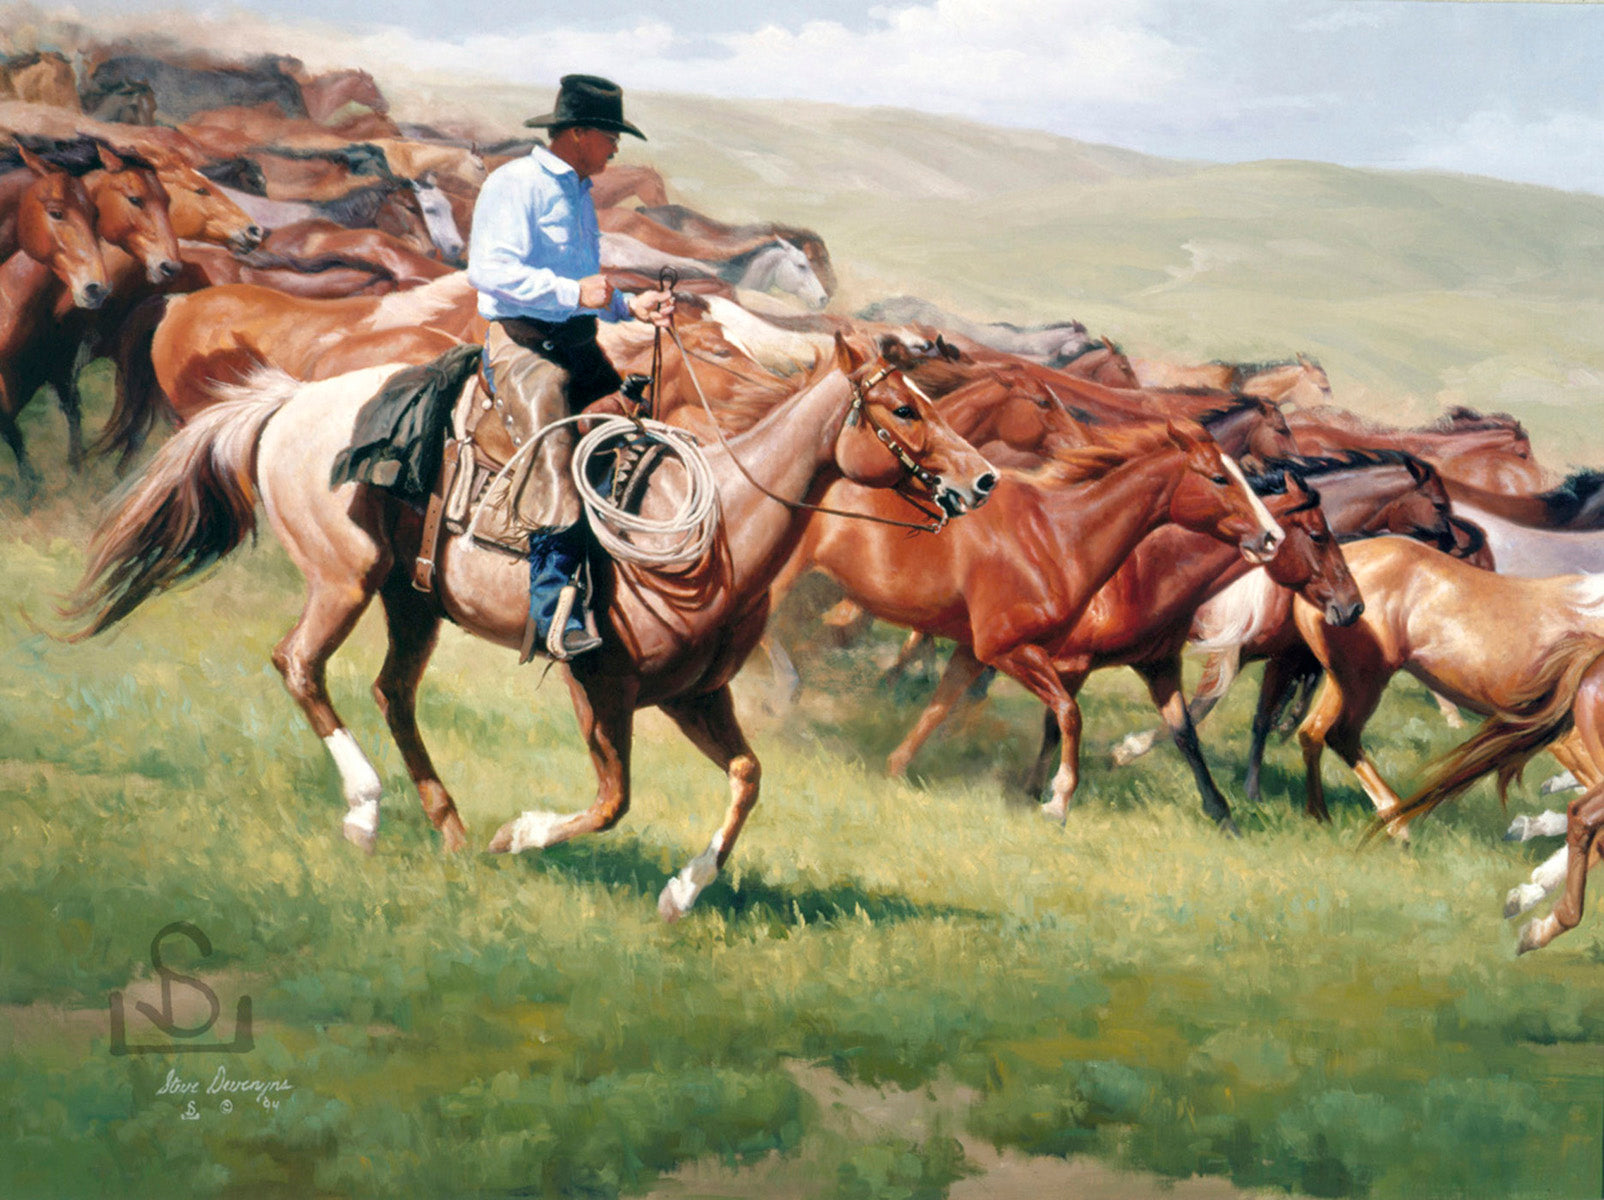 "Nothing beats the rush of horses running on the western plains. ""Life in the Fast Lane"" by Steve Devenyns is available on Giclée on Canvas or Giclée on Canvas Artist Proof. Steve Devenyns is One of America's Finest Western Artists Original Paintings of Ranching, Wildlife and Cowboy art."